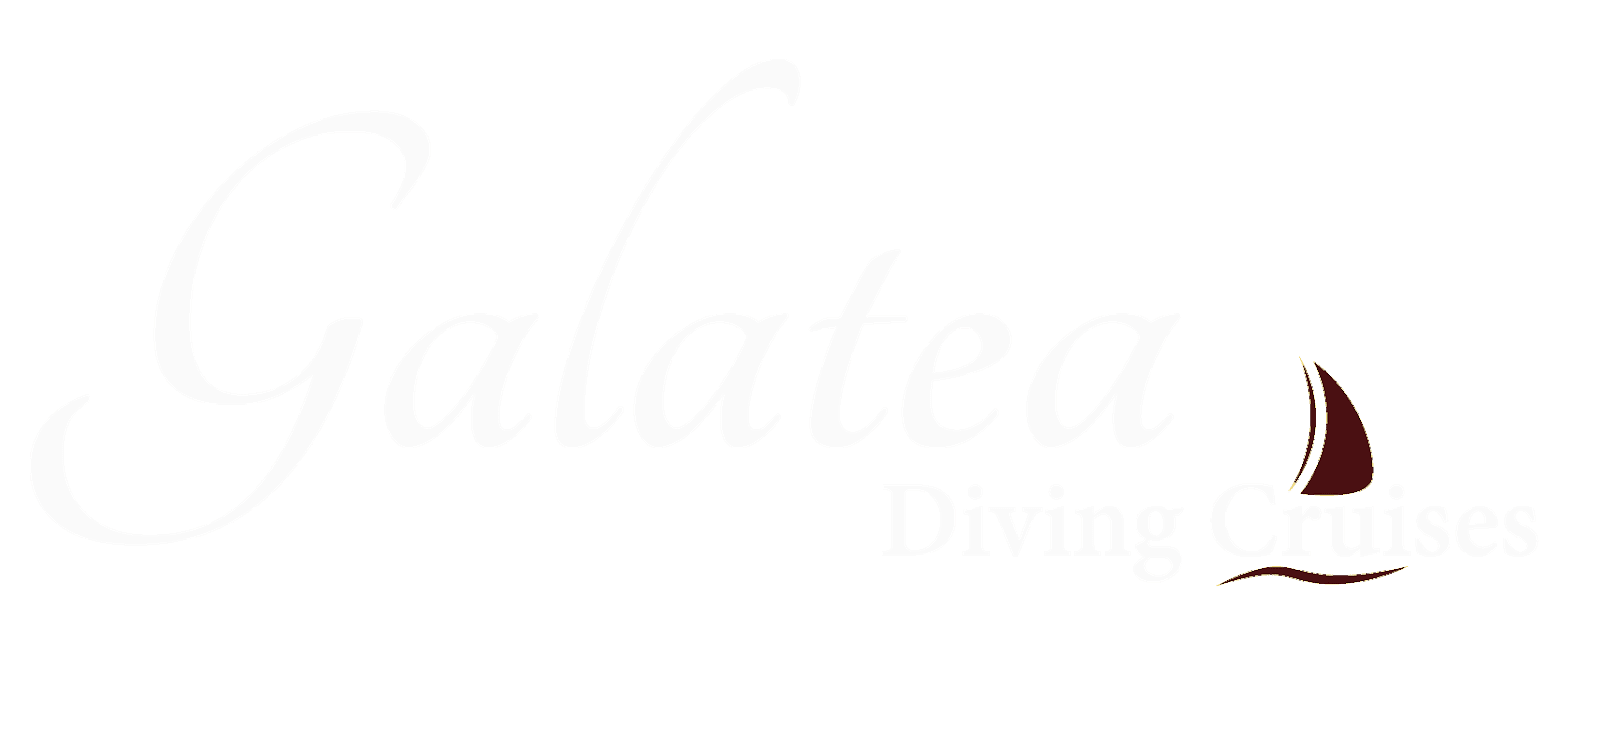 Galatea Diving Cruises